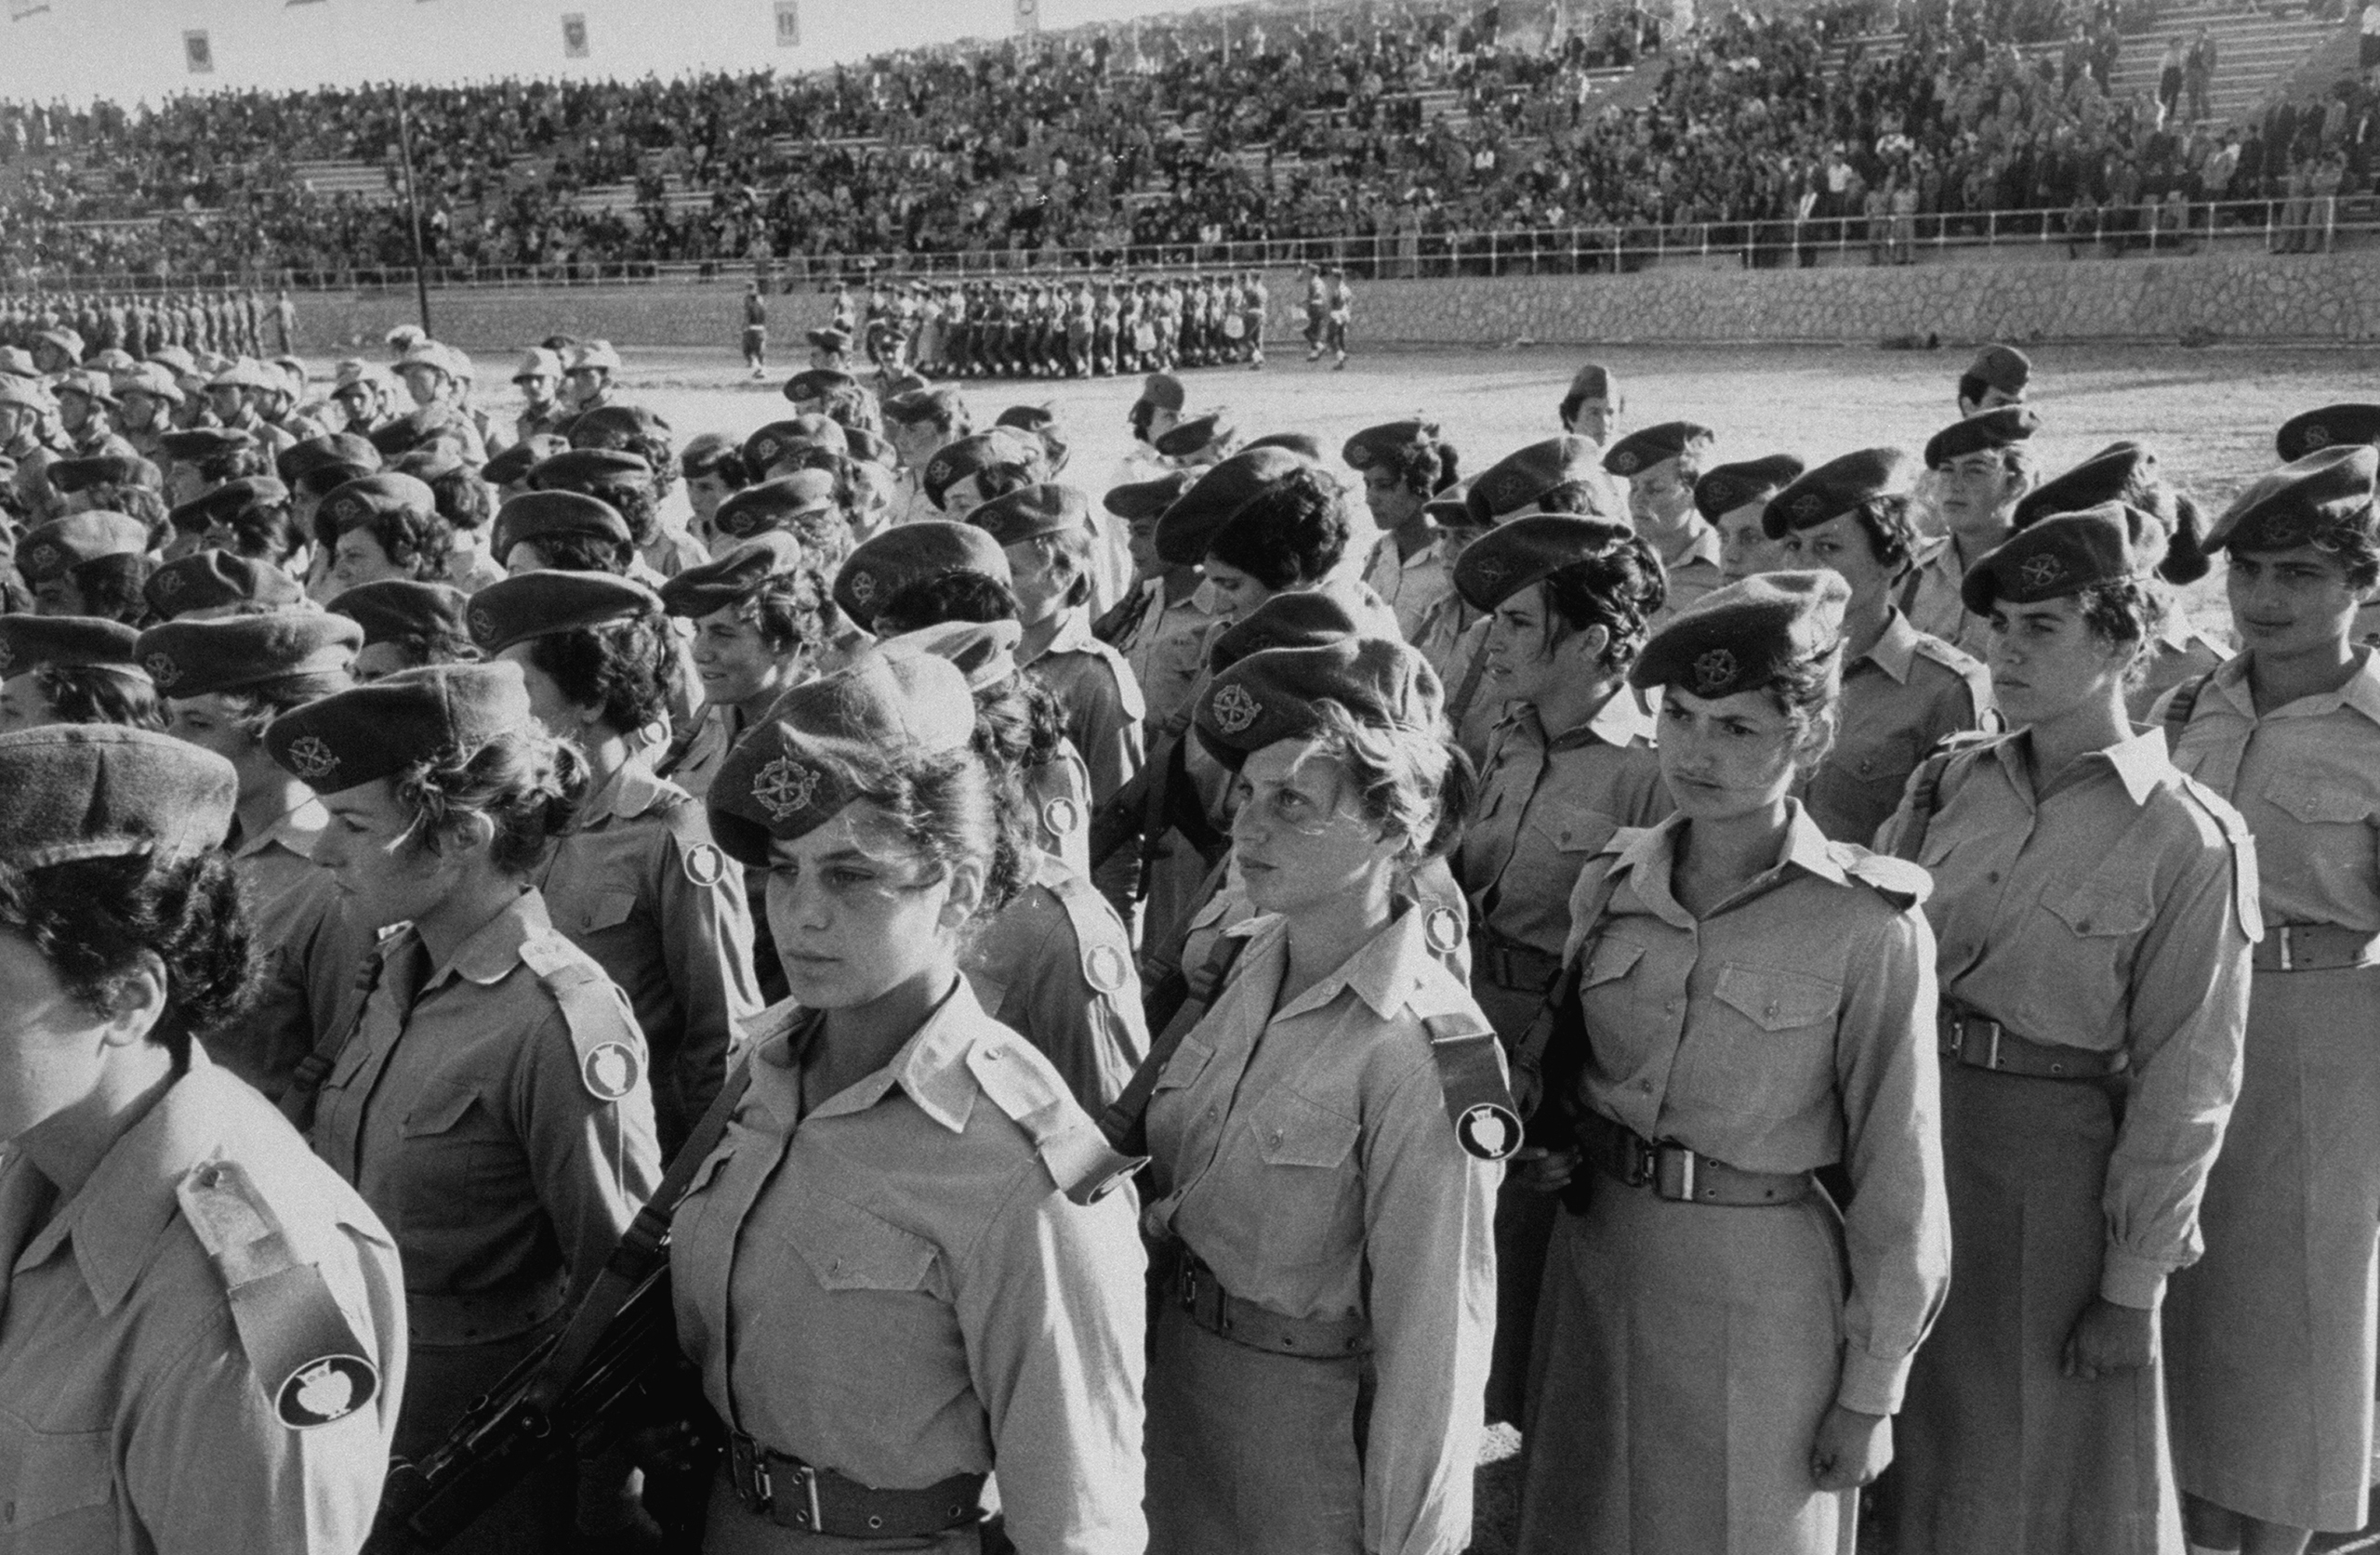 Israeli women's Army unit parading in Jerusalem carrying burp guns, on the 10th anniversary of Israeli nationhood,1956.